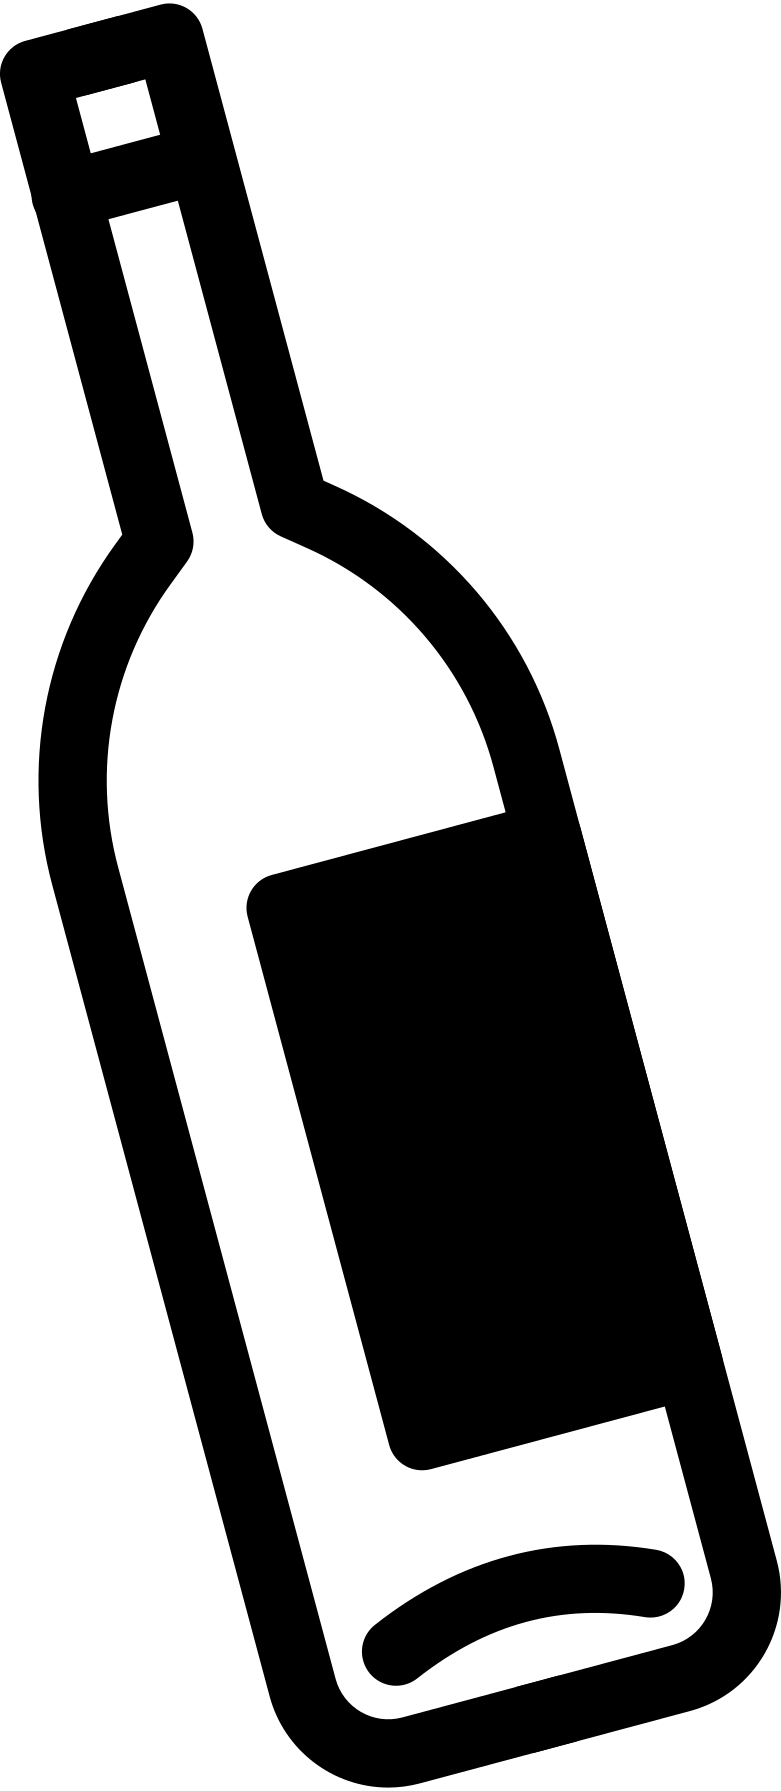 bottle small Clipart illustration in PNG, SVG